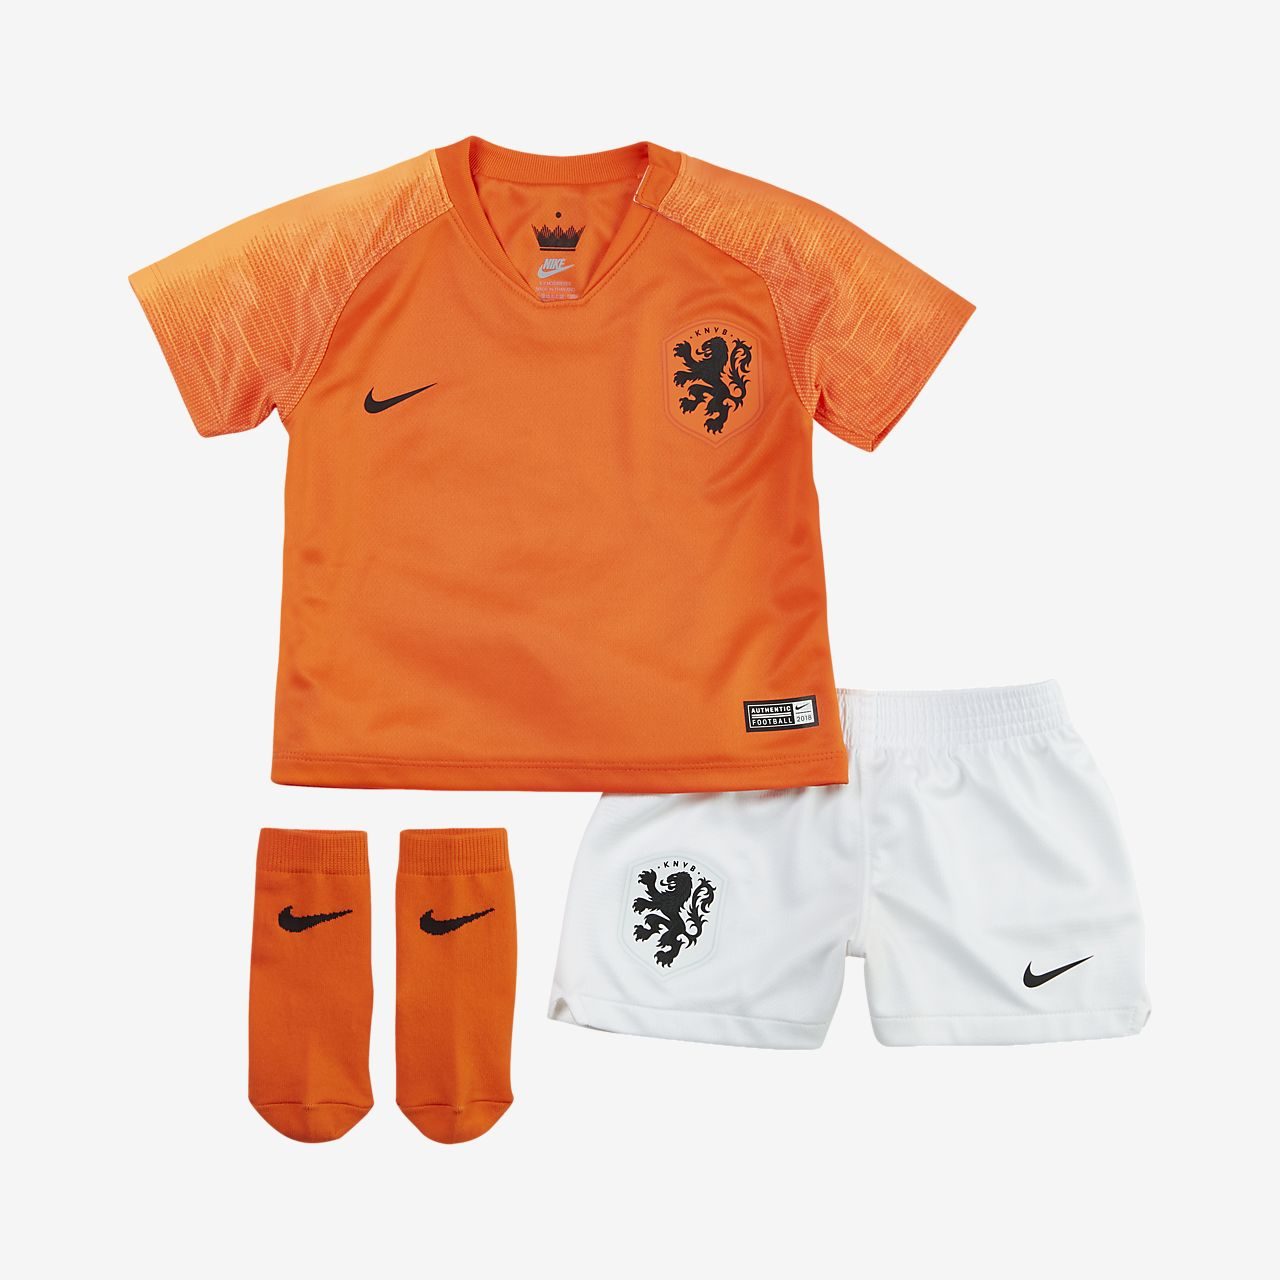 2018 Netherlands Stadium Home Baby & Toddler Football Kit